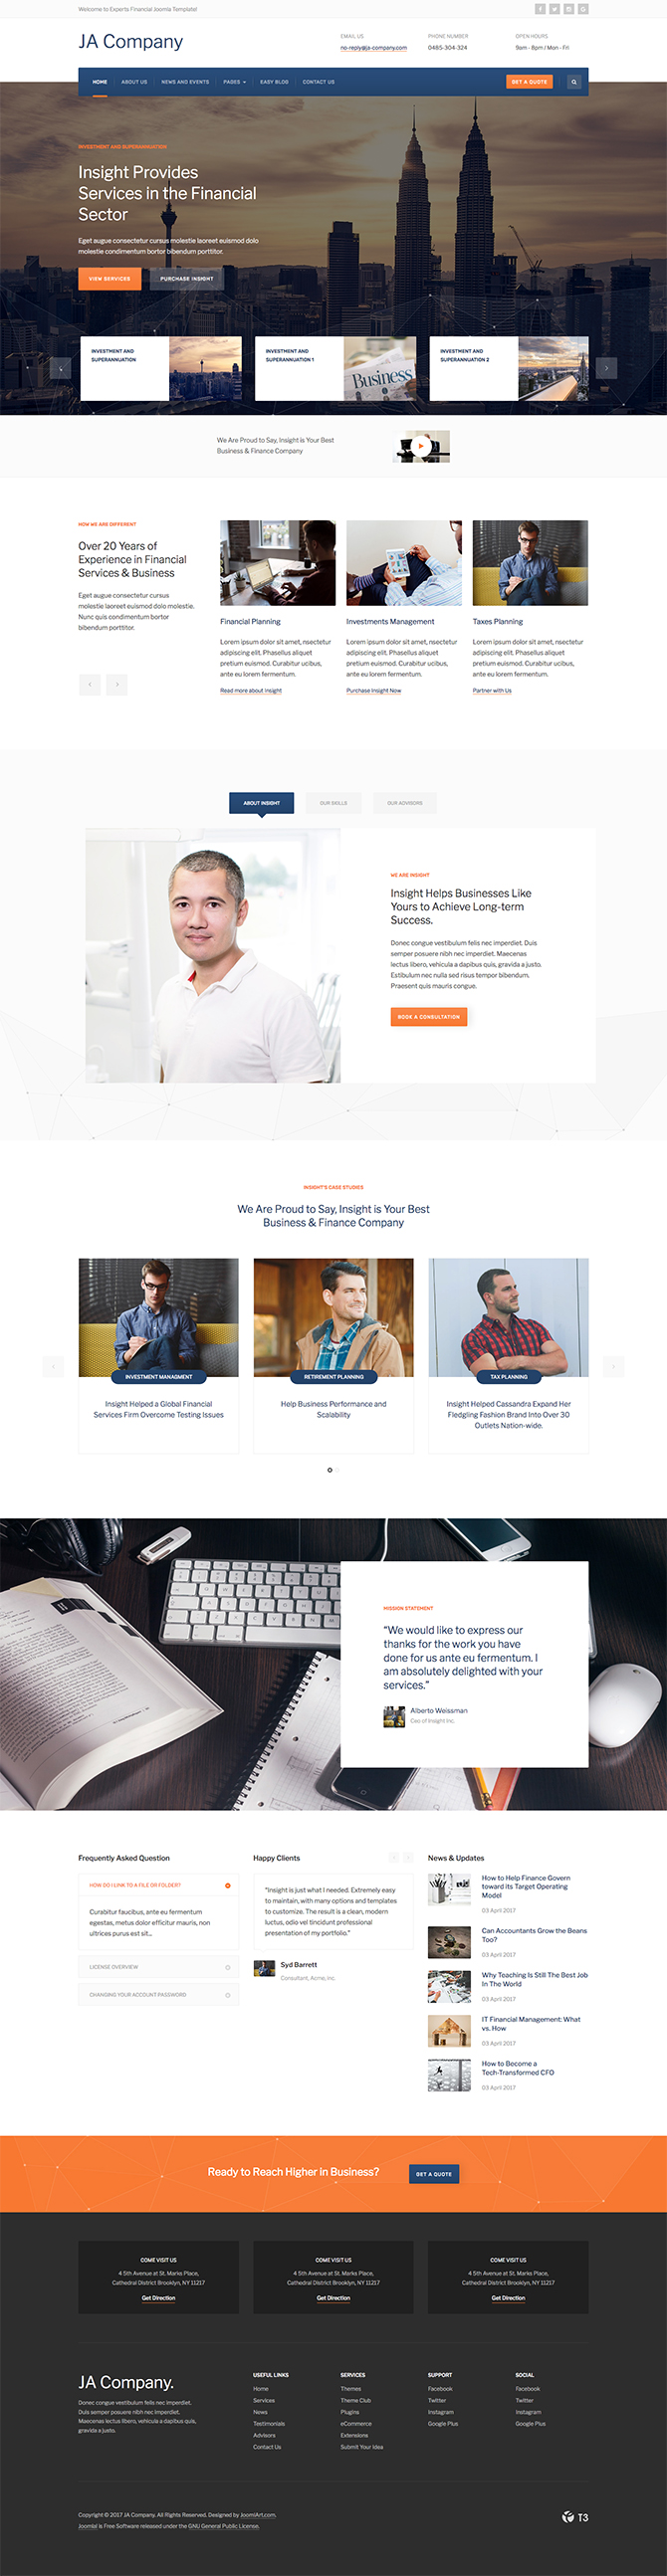 Comfortable 1 Inch Circle Template Huge 1 Inch Hexagon Template Solid 10 Best Resume Samples 10 Steps To Creating An Effective Resume Youthful 1099 Template Word Black1099 Templates JA Company   Joomla Template For Company, Business Website   JoomlArt